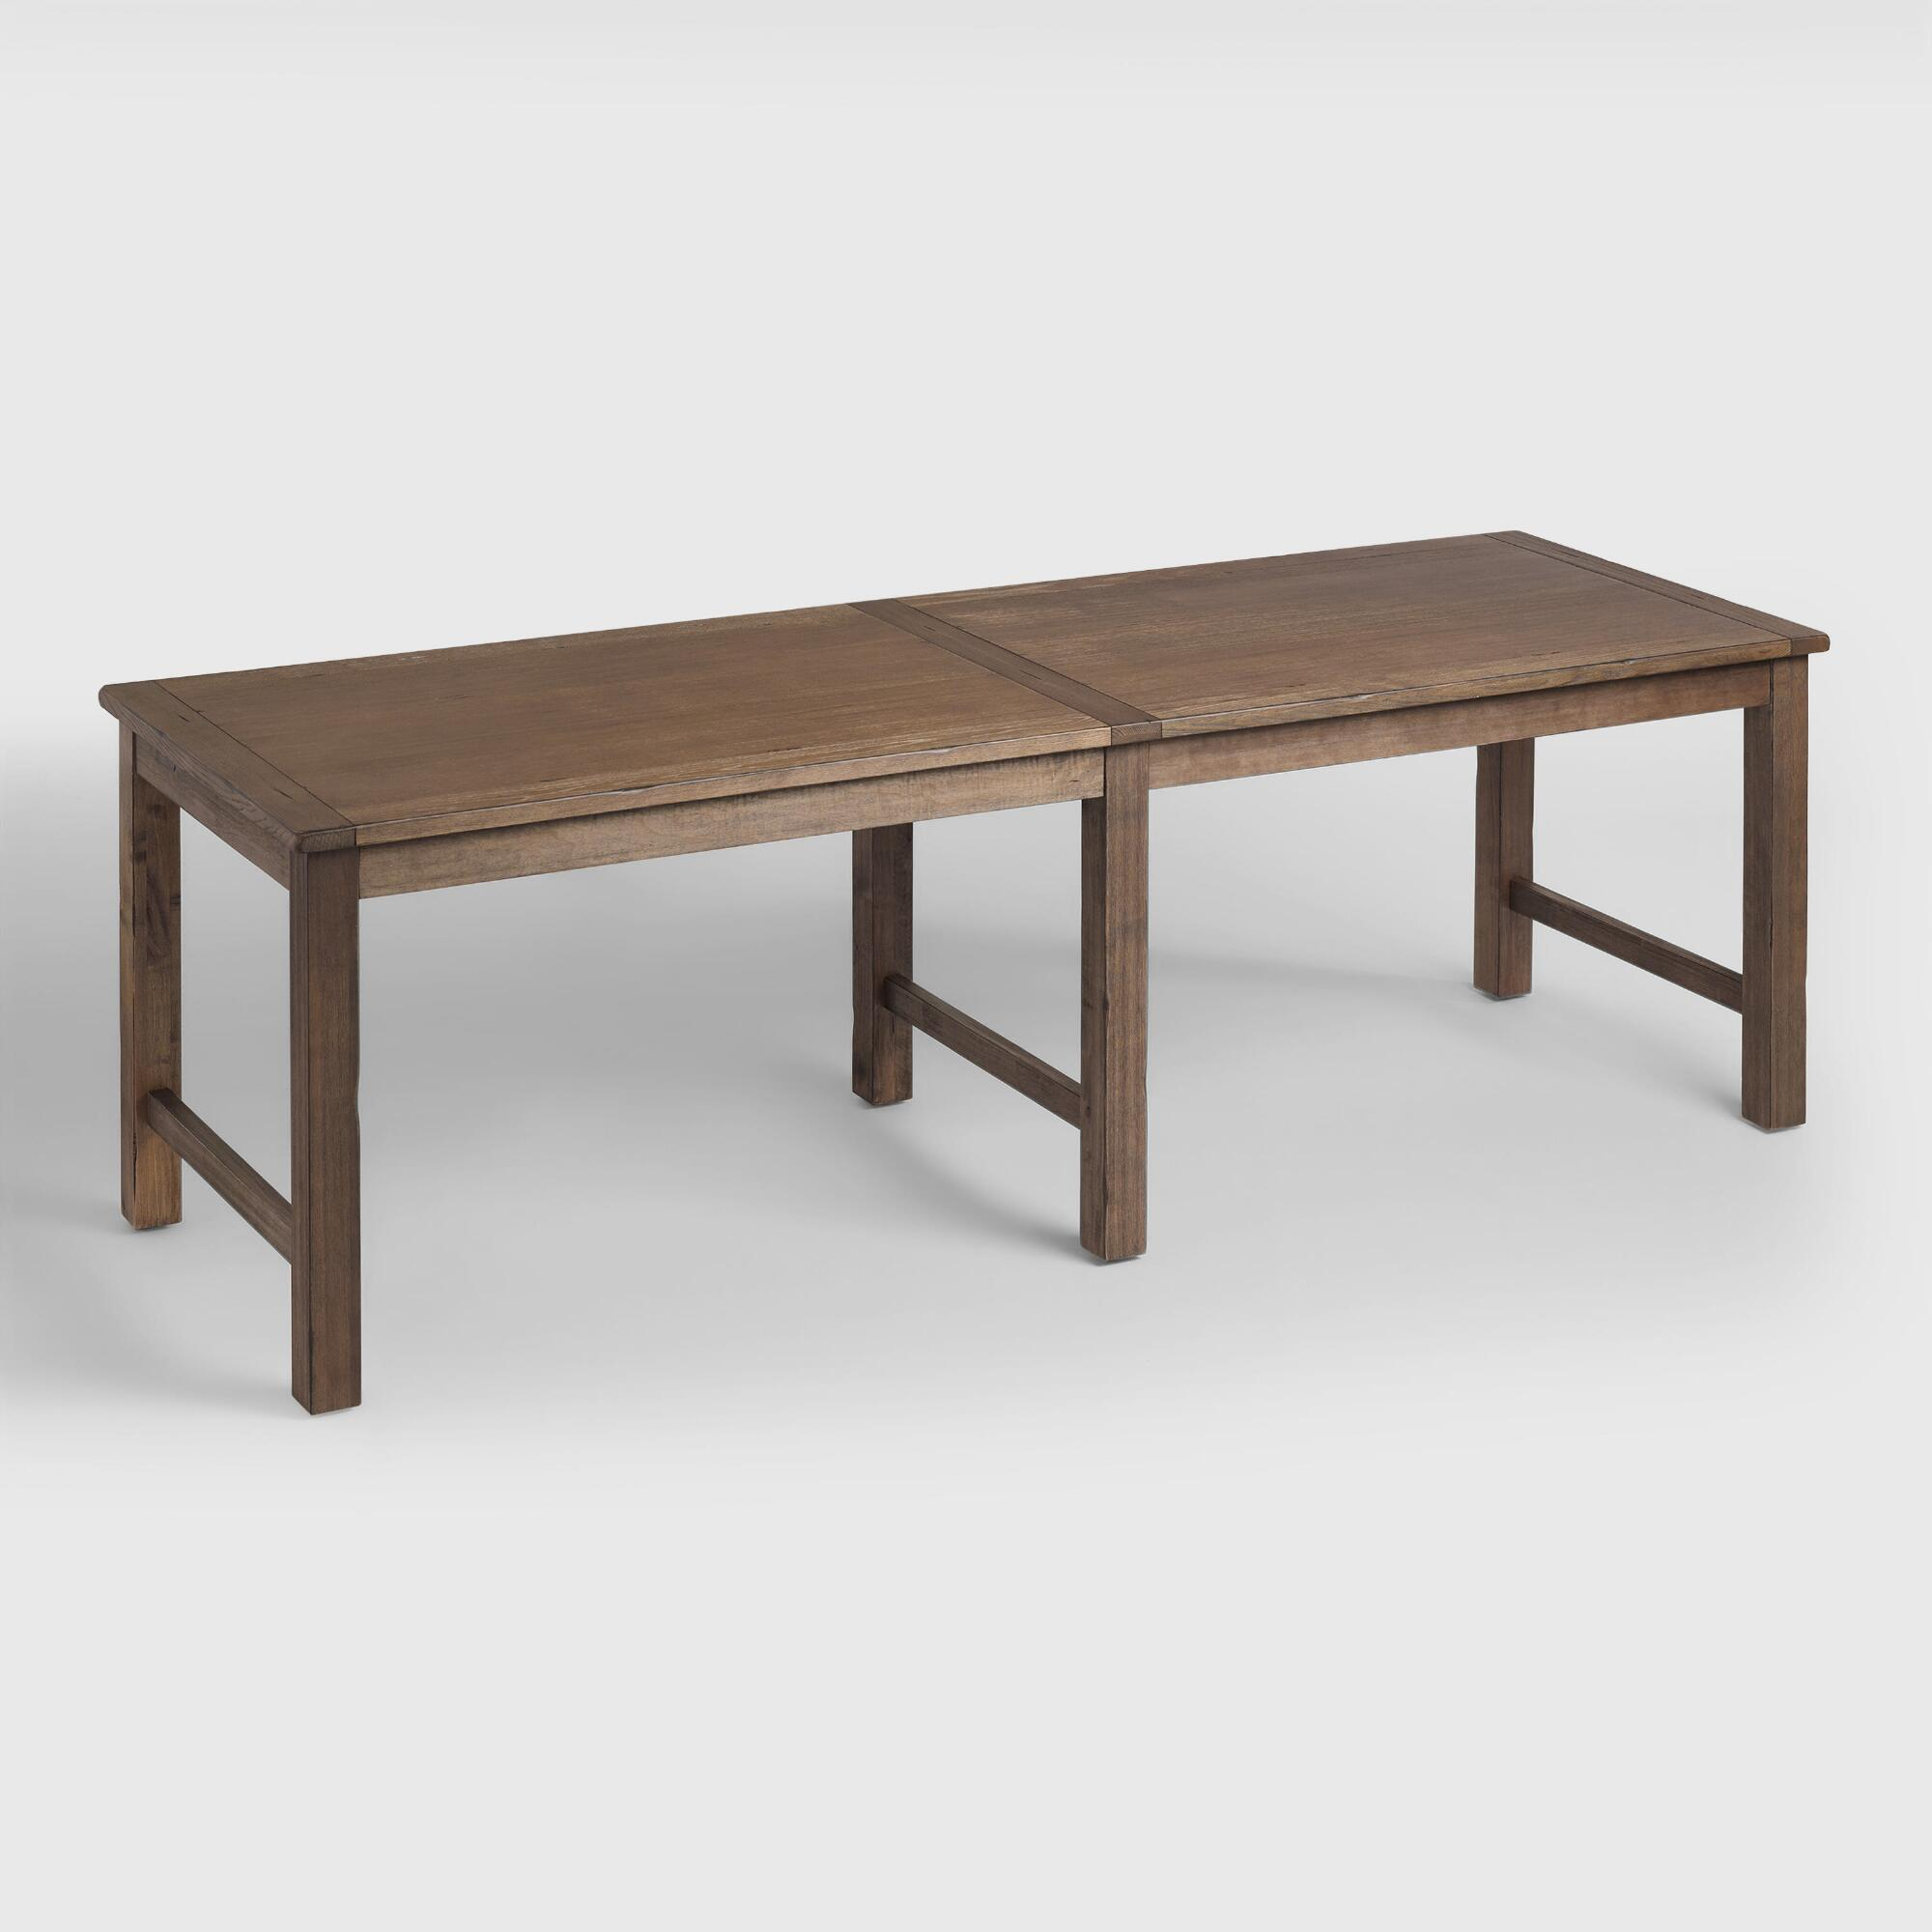 Distressed brown wood gulianna extra long dining table world market - Long skinny dining table ...